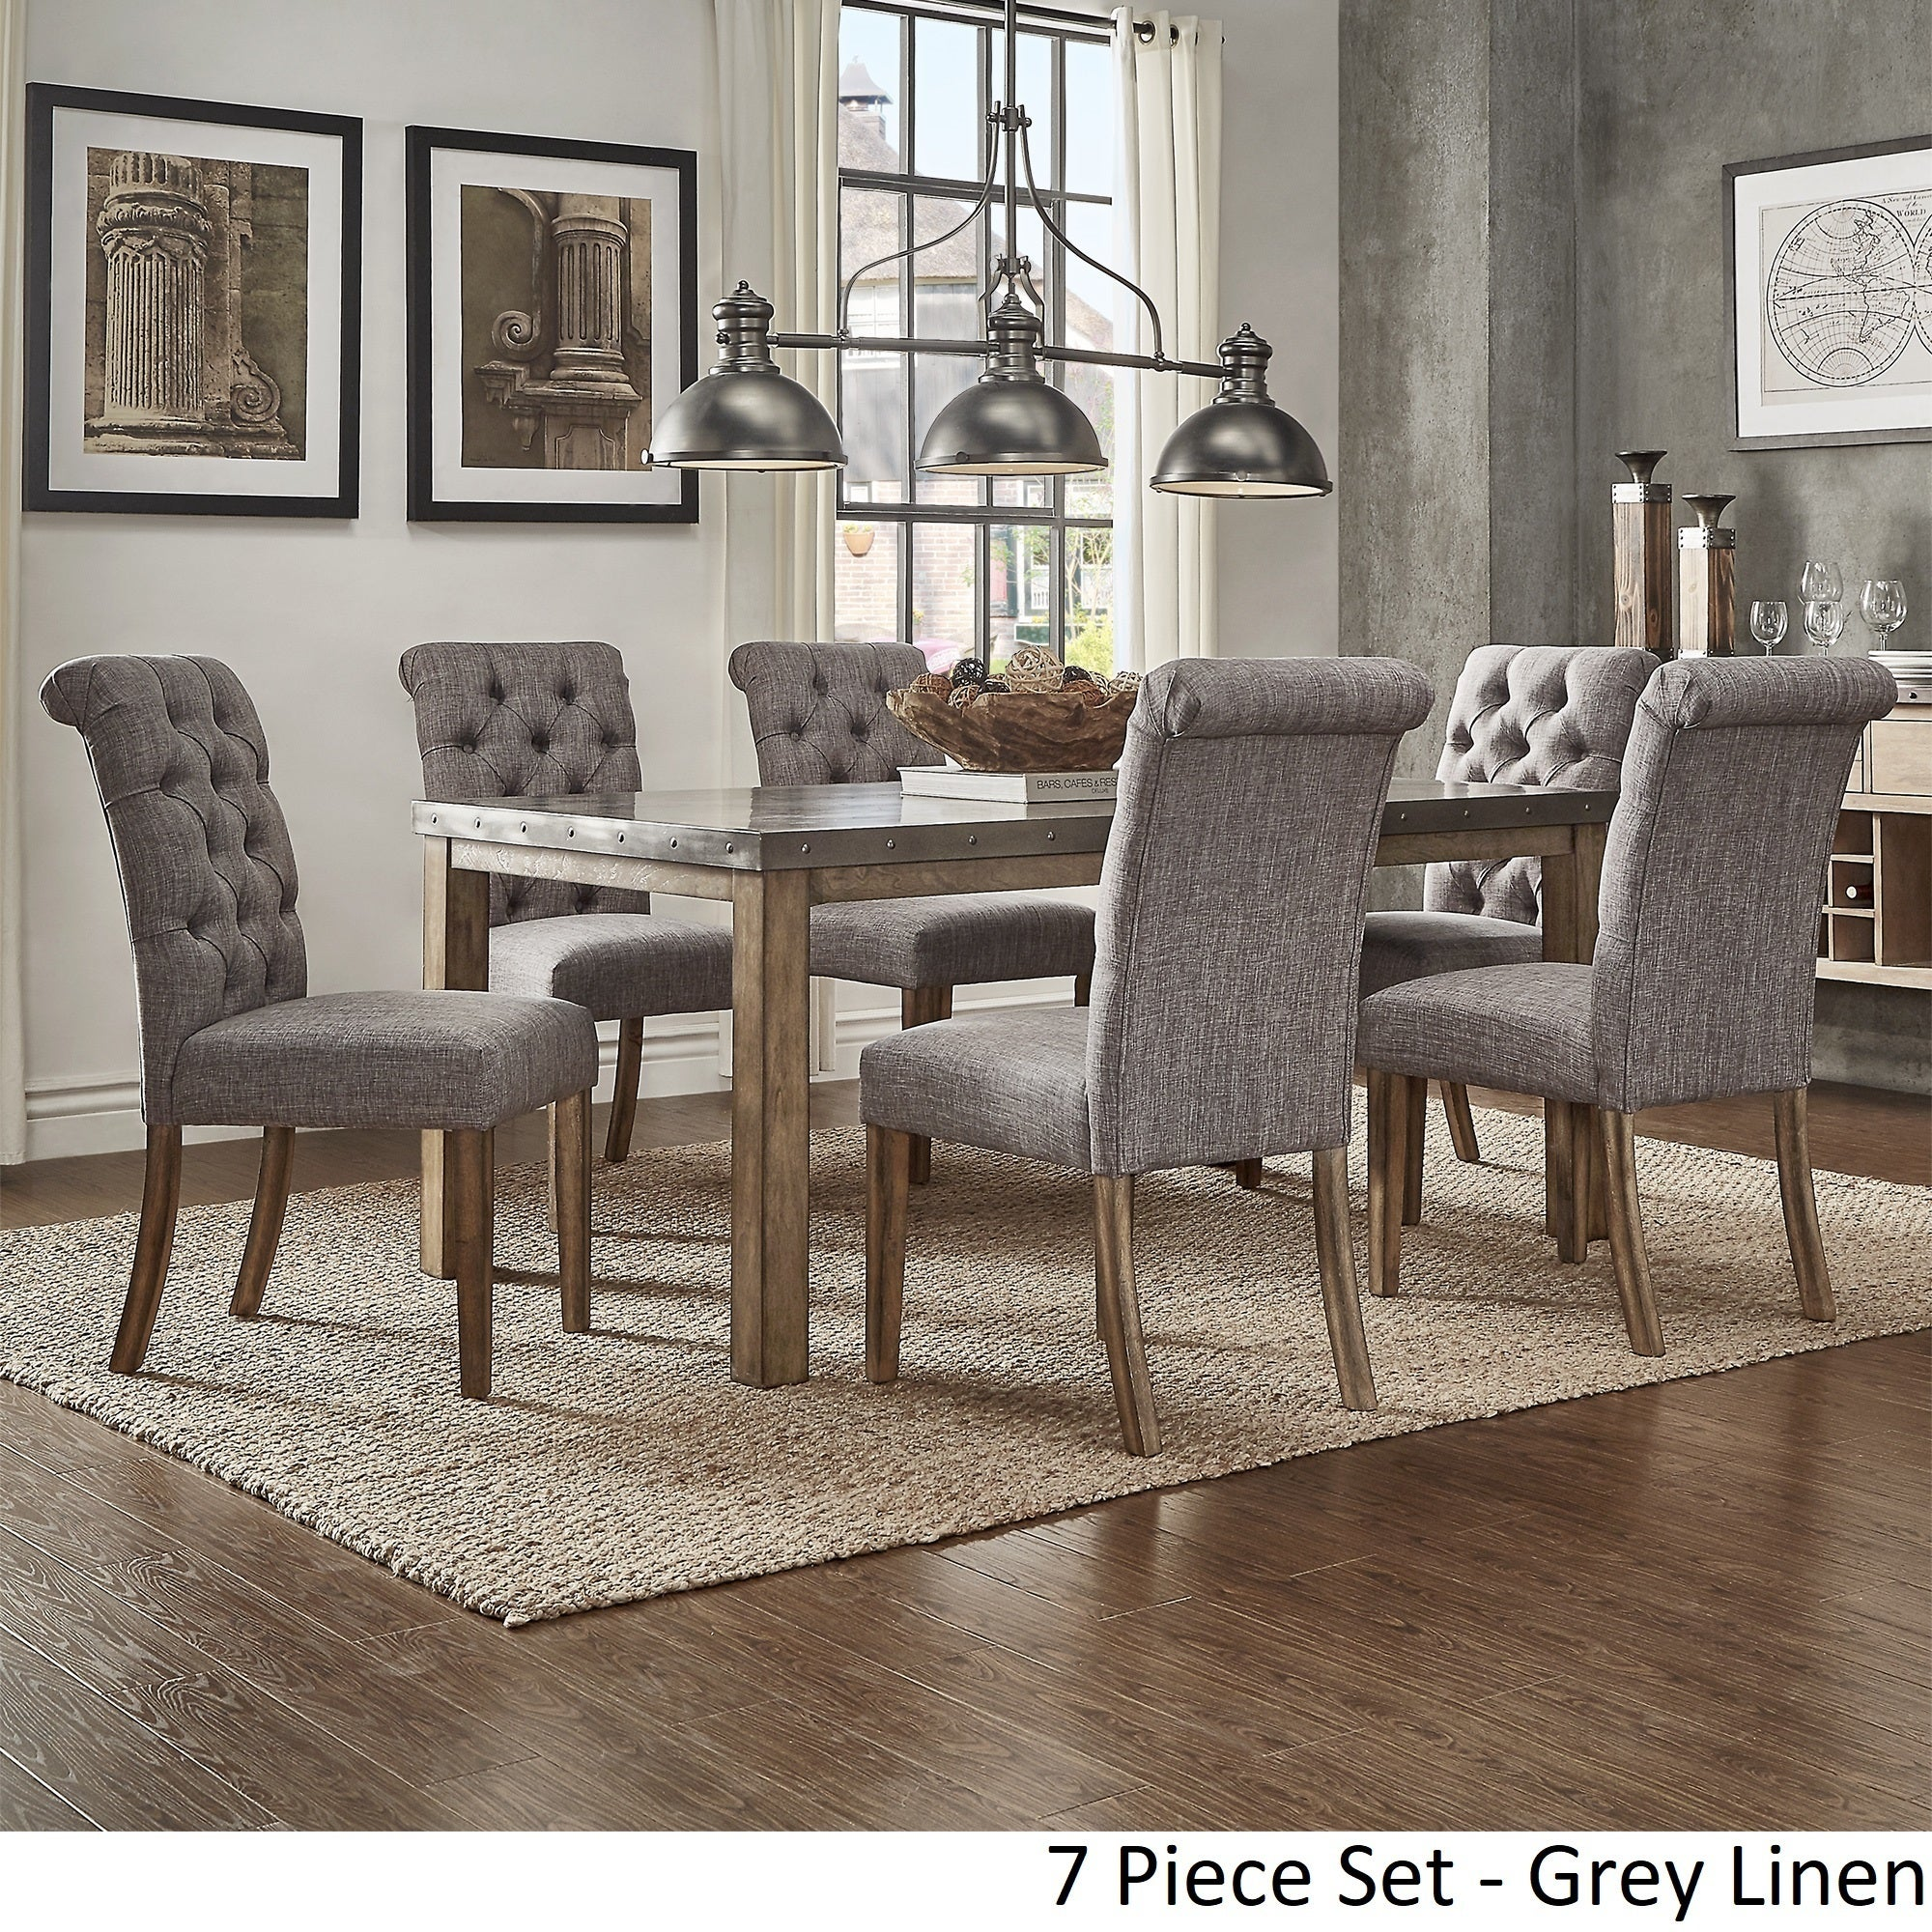 Shop Cassidy Stainless Steel Top Rectangle Dining Table Set by iNSPIRE Q Artisan - Free Shipping Today - Overstock.com - 17239488 & Shop Cassidy Stainless Steel Top Rectangle Dining Table Set by ...